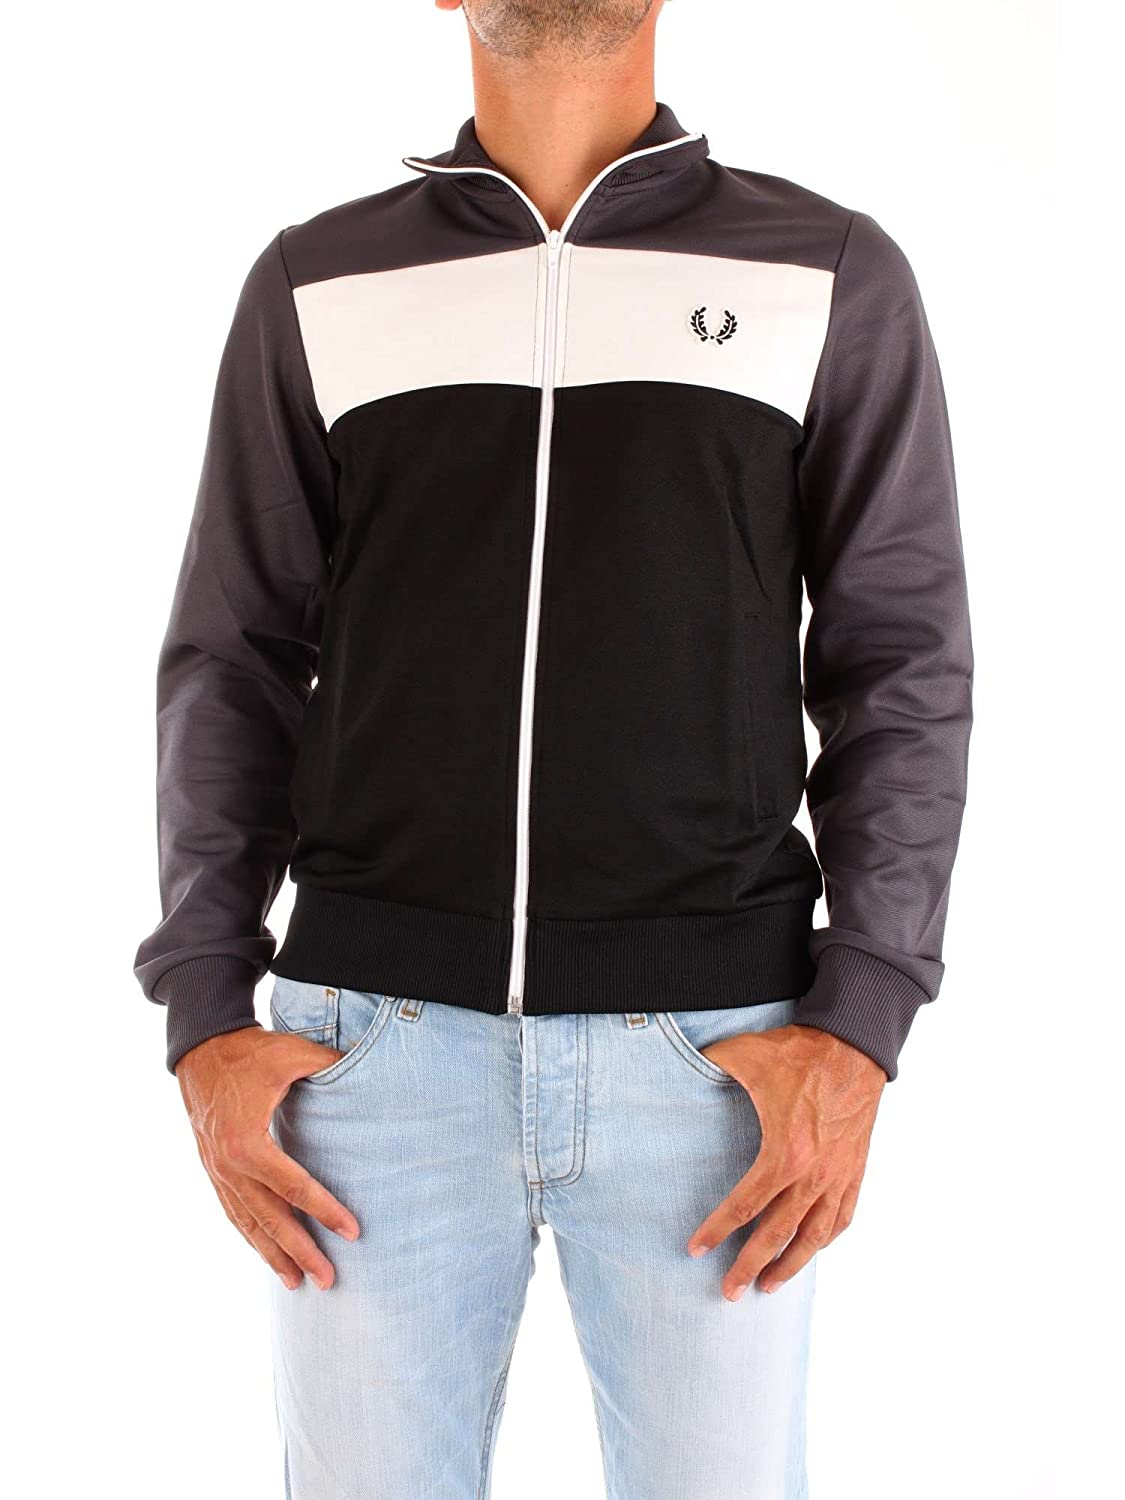 Fred Perry Men's Colour Block Track Jacket Gray